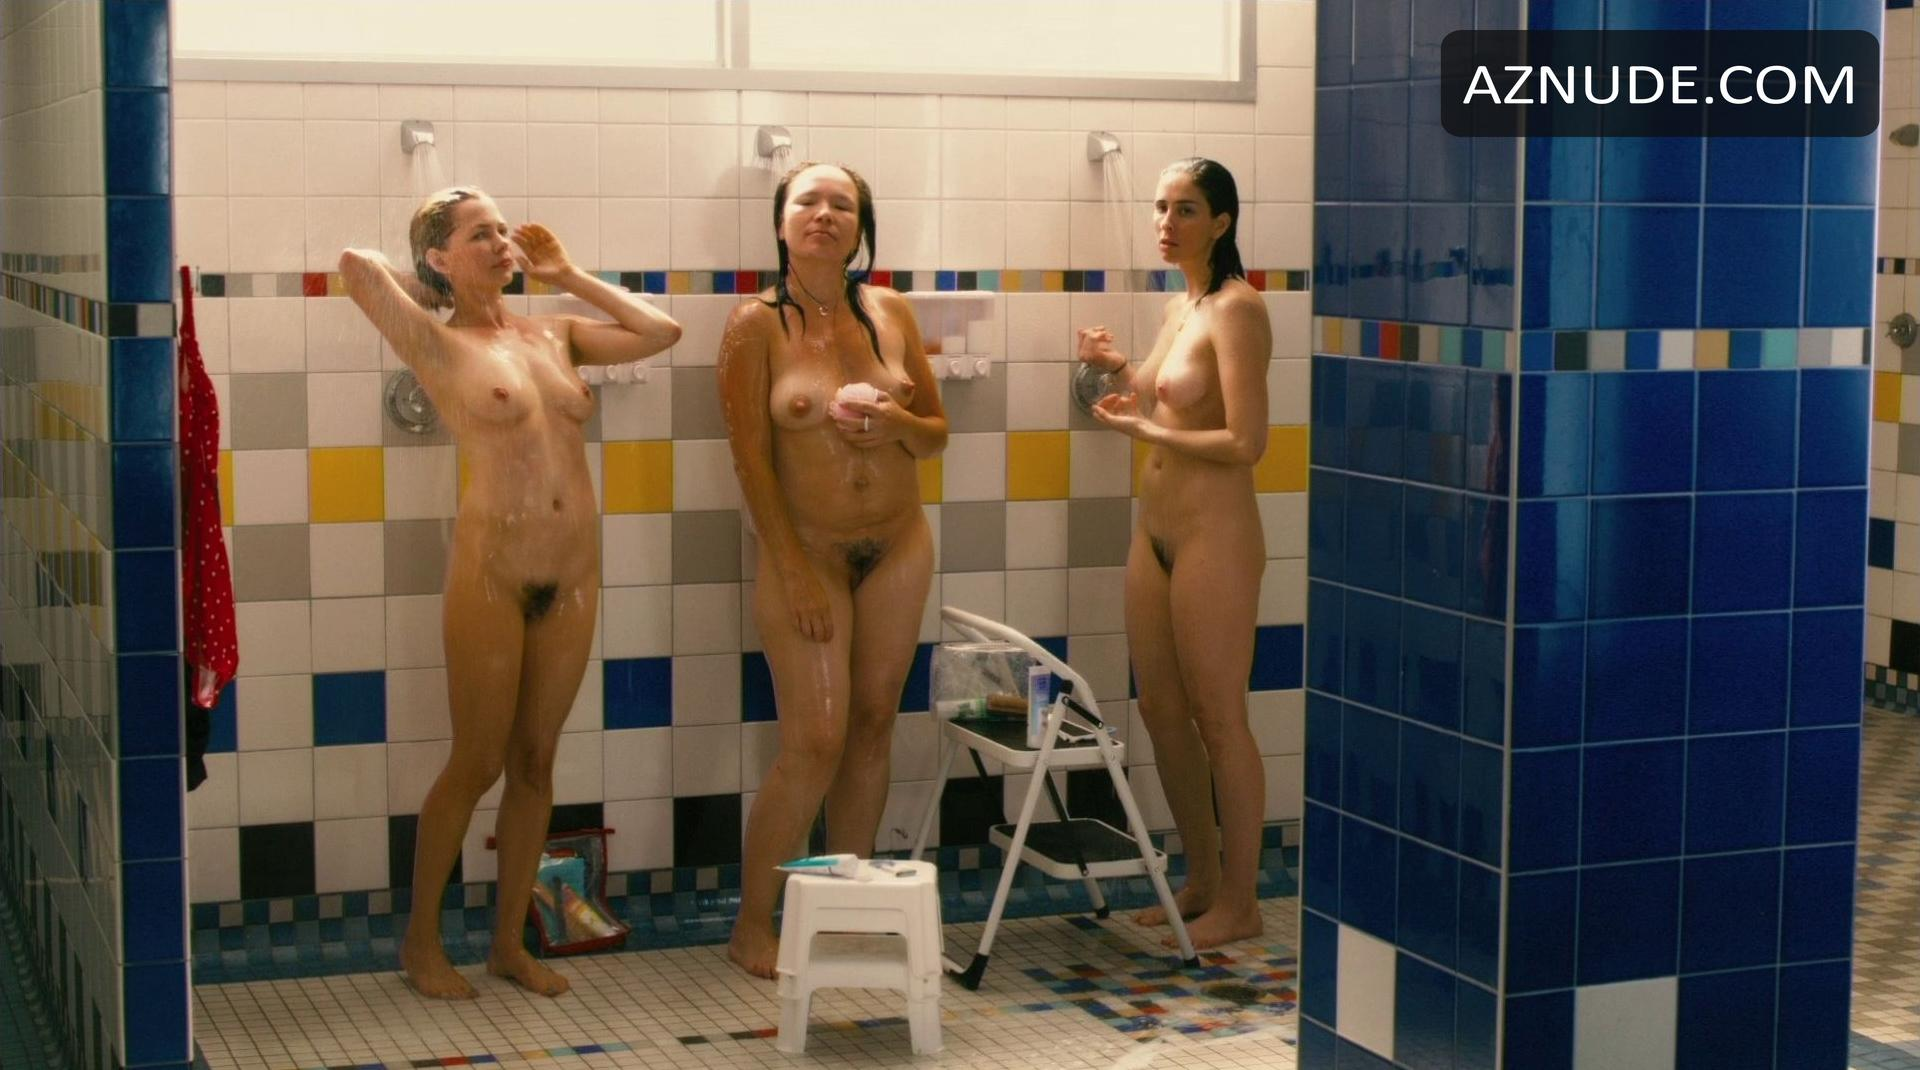 Aubrey plaza nude sex scene in ned rifle scandalplanetcom - 1 part 3